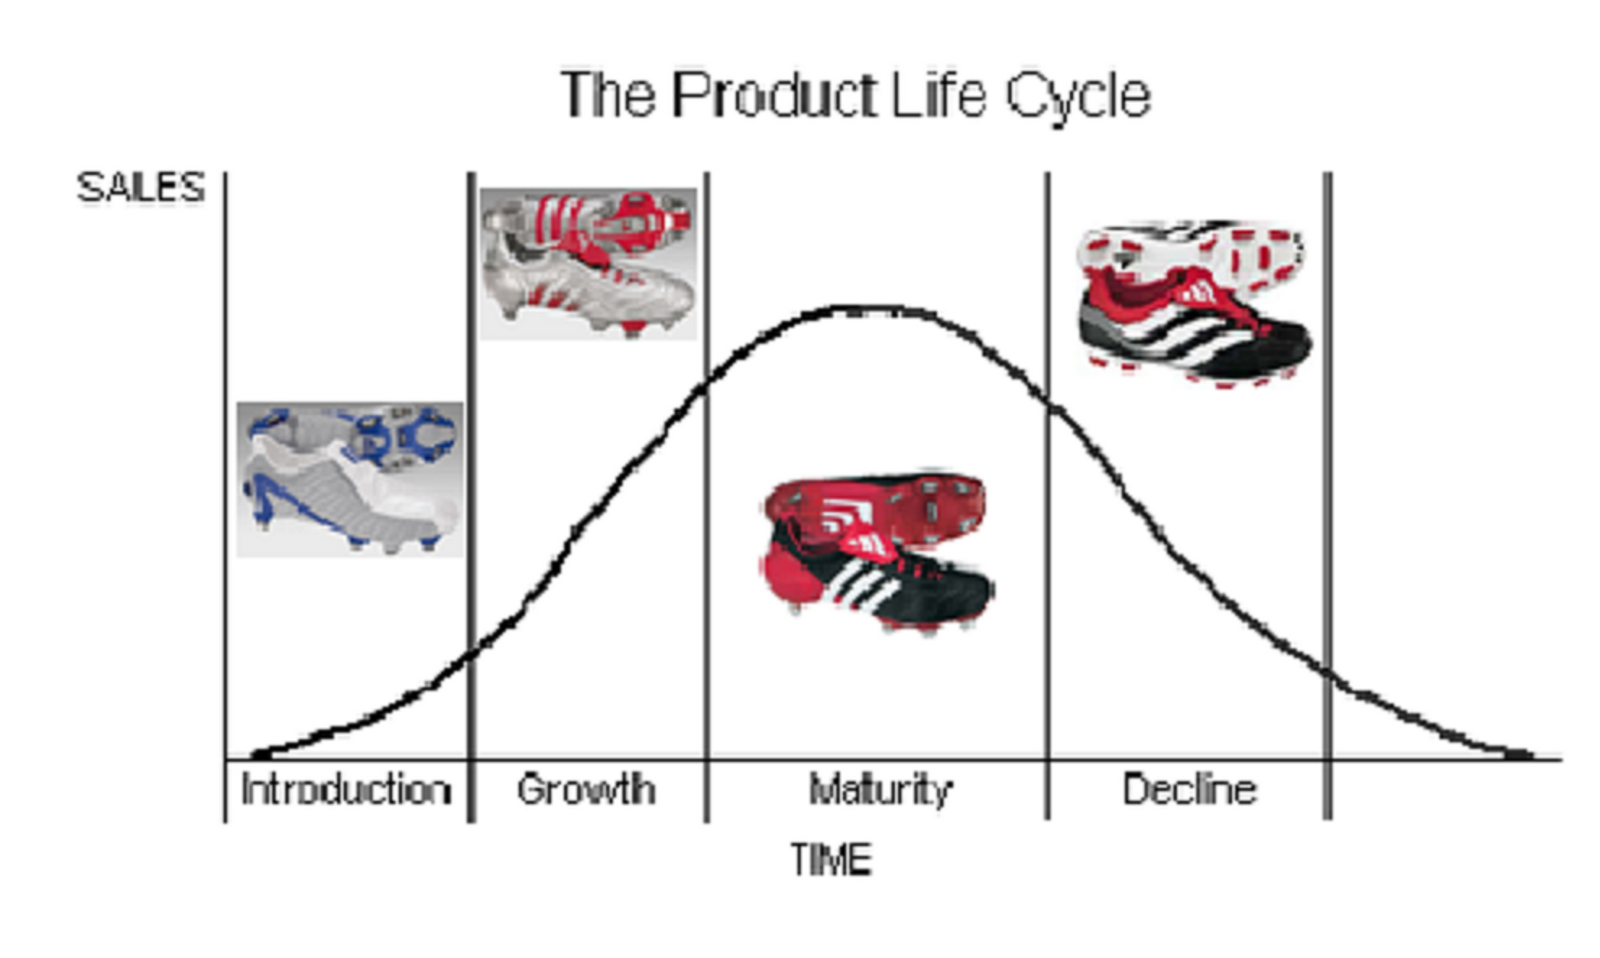 life cycle of the football industry Product life cycle stages football no description by josh c on 15 november 2011 tweet comments (0) please log in to add your comment.